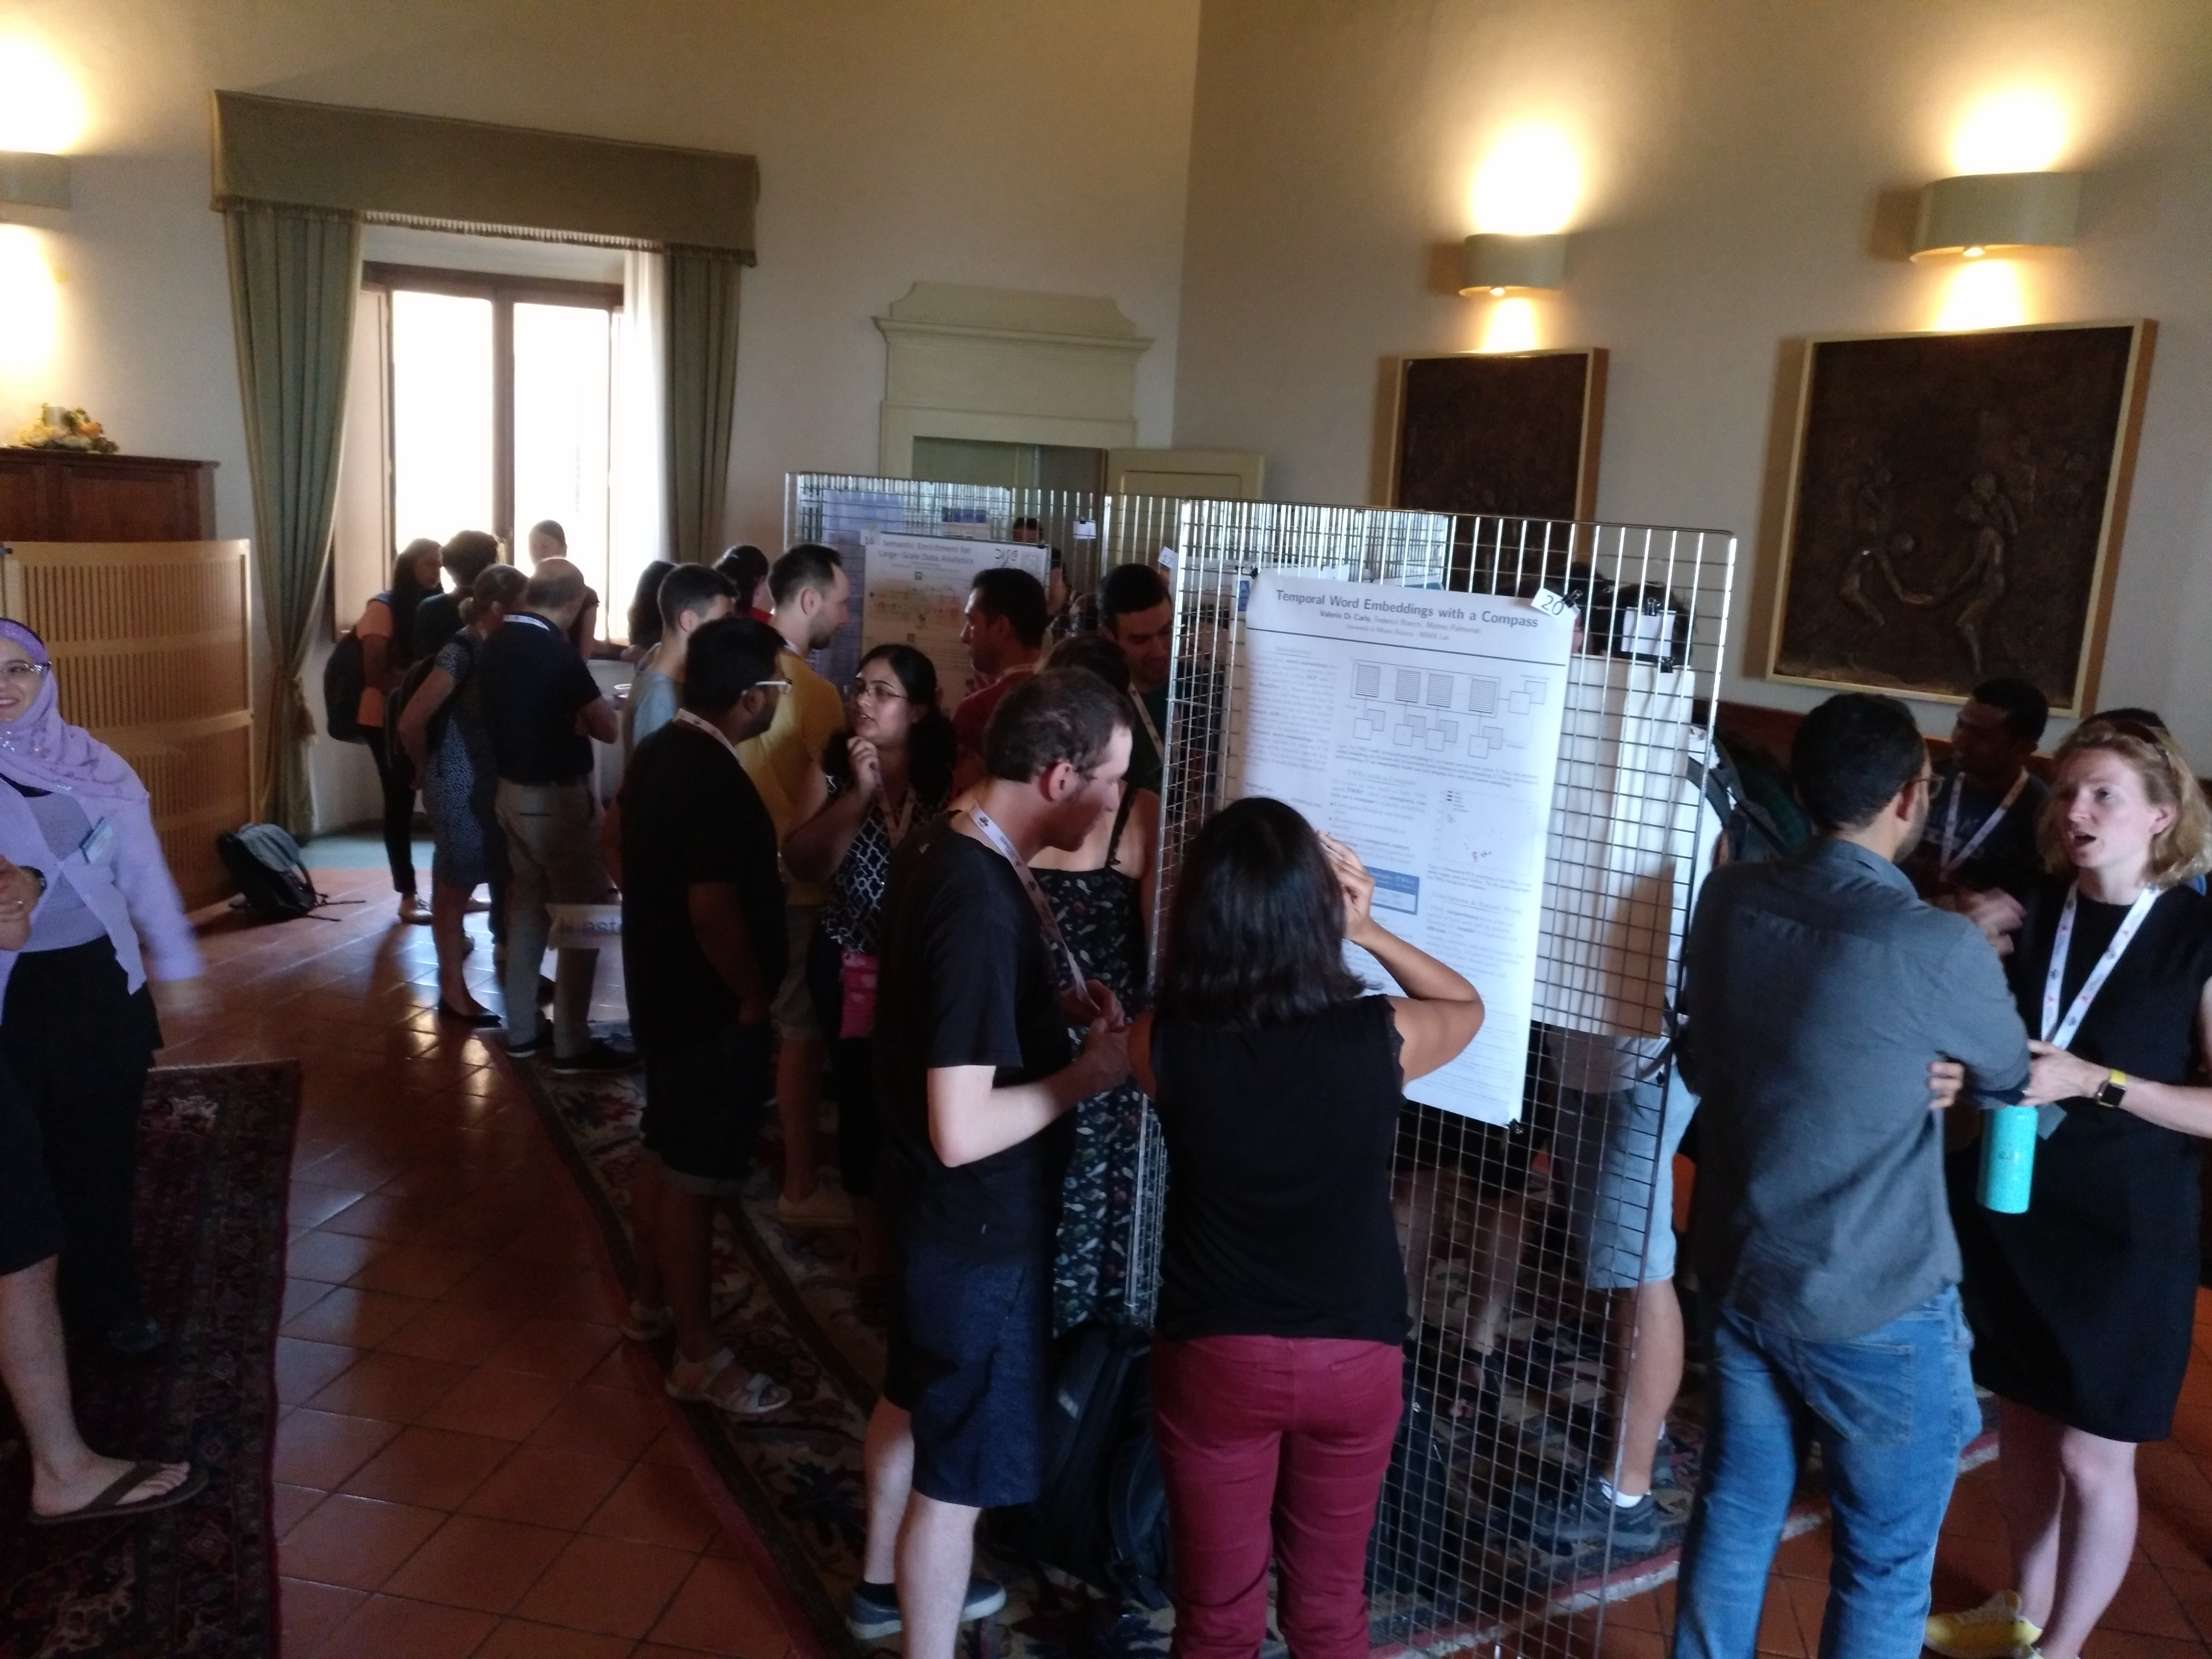 The poster session